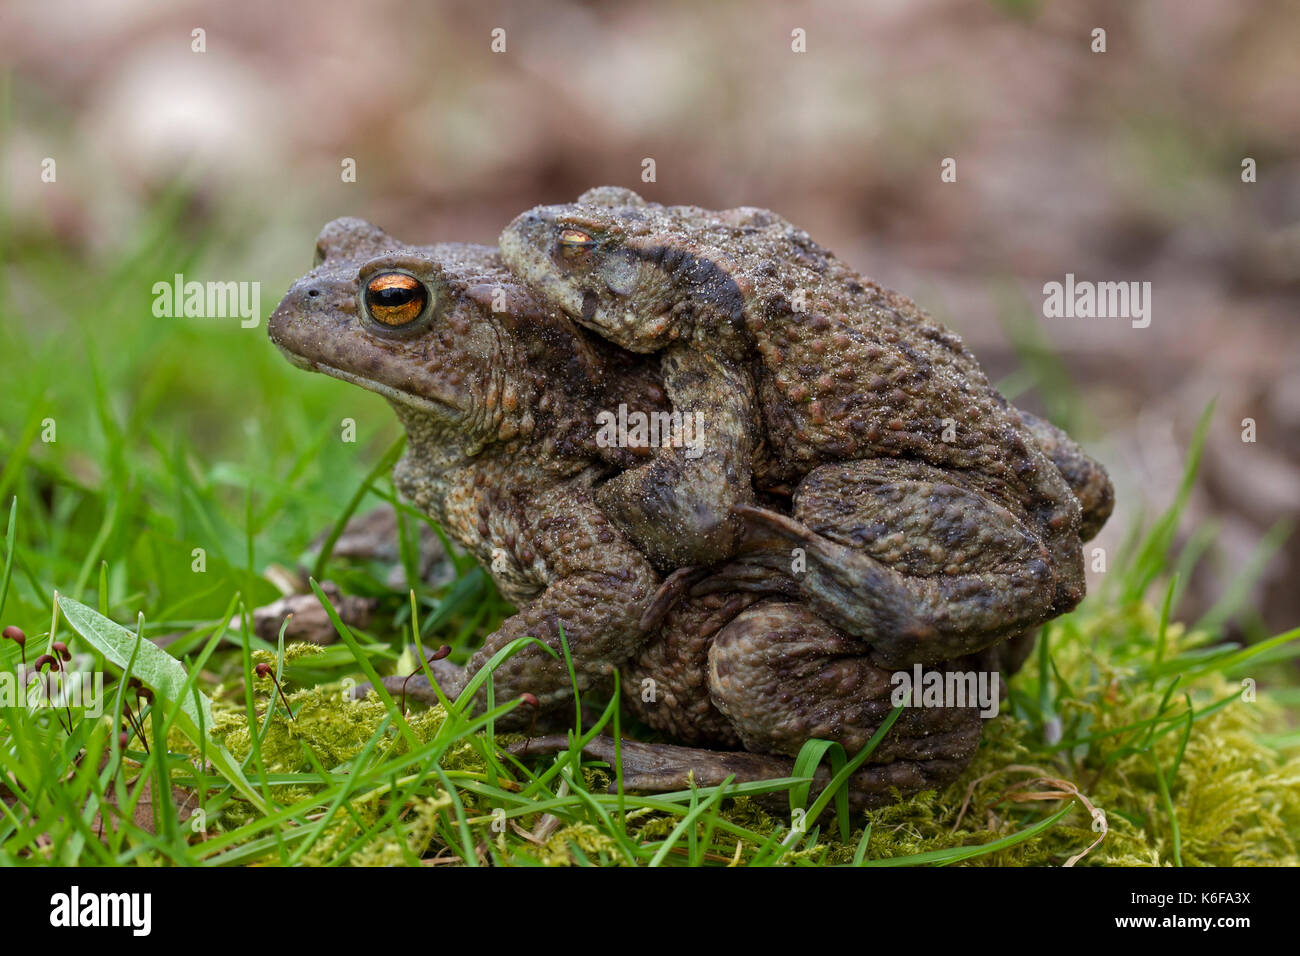 Common toad / European toads (Bufo bufo) pair in amplexus walking over grassland to breeding pond in spring - Stock Image